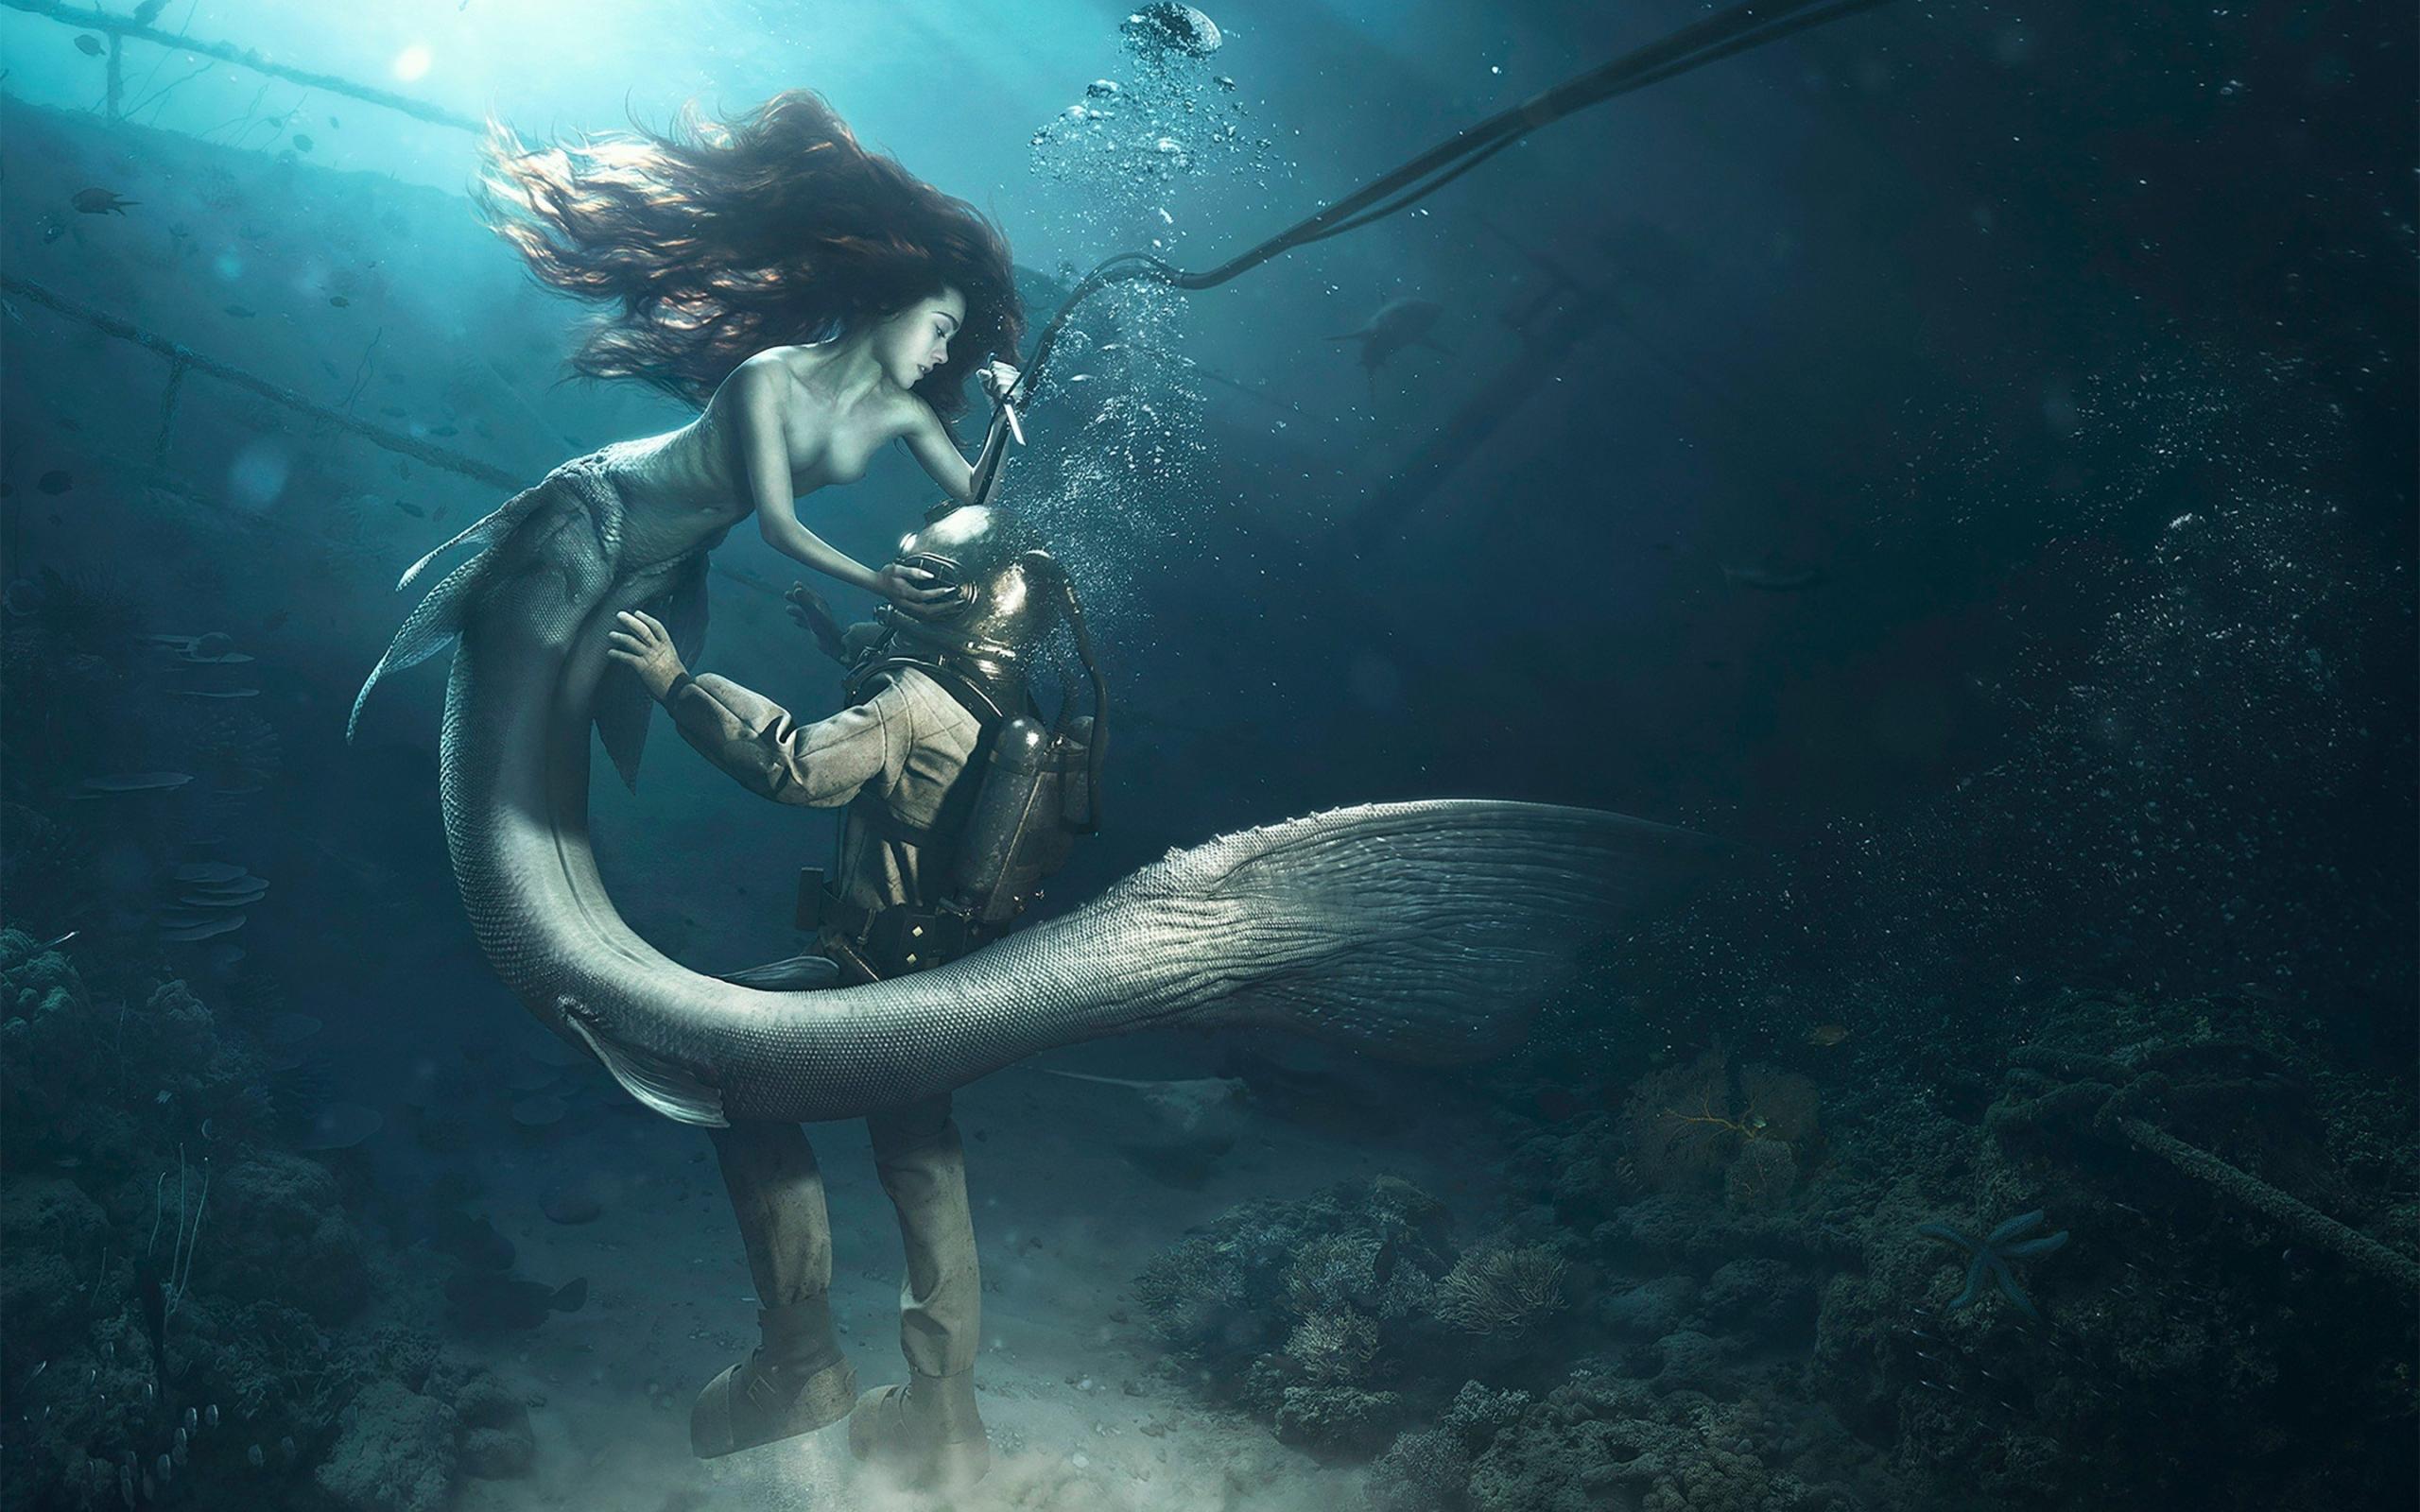 Get the Best Mermaid Wallpaper by Using Mobile Software